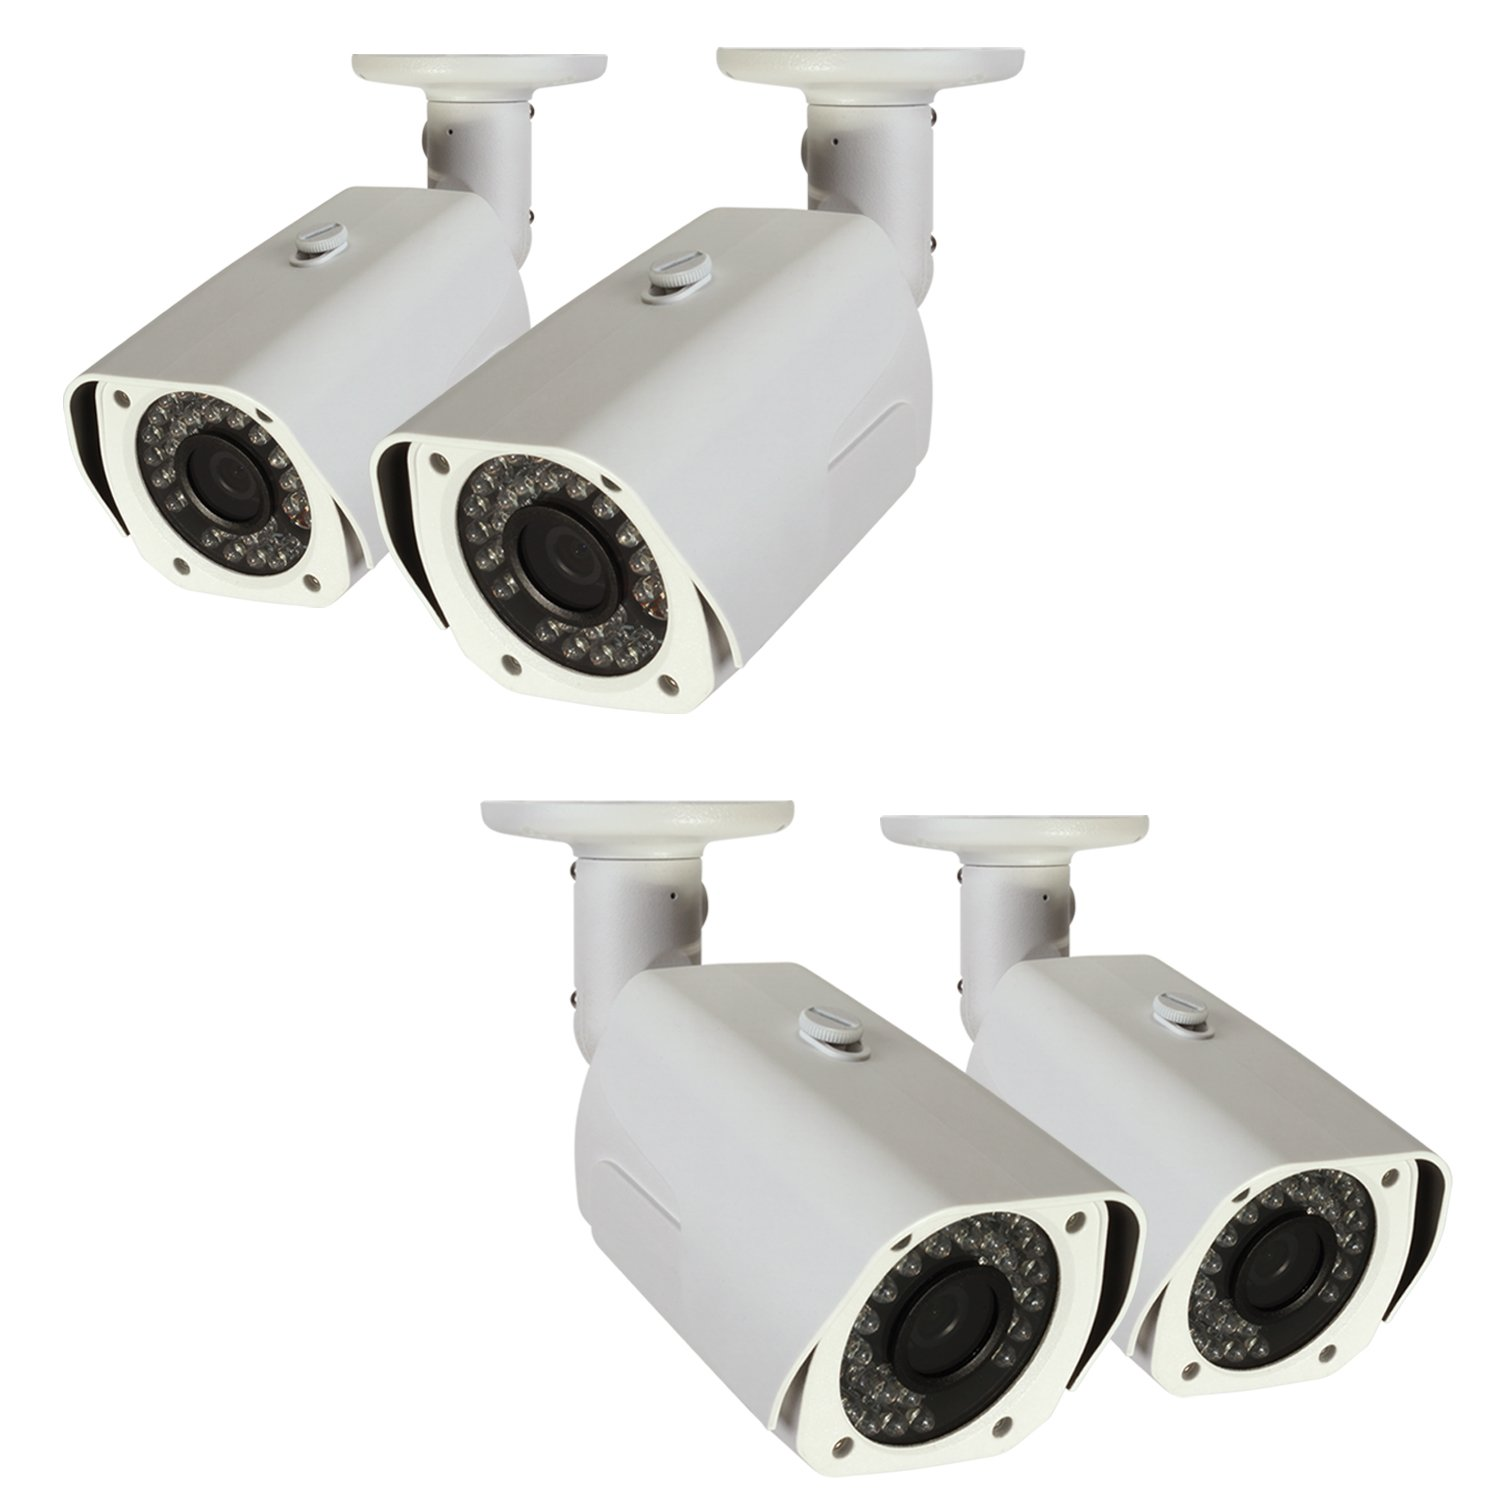 Q-See QCA7201B-4 720p High Definition Analog, Metal Housing, Bullet Security Camera 4-Pack (White)